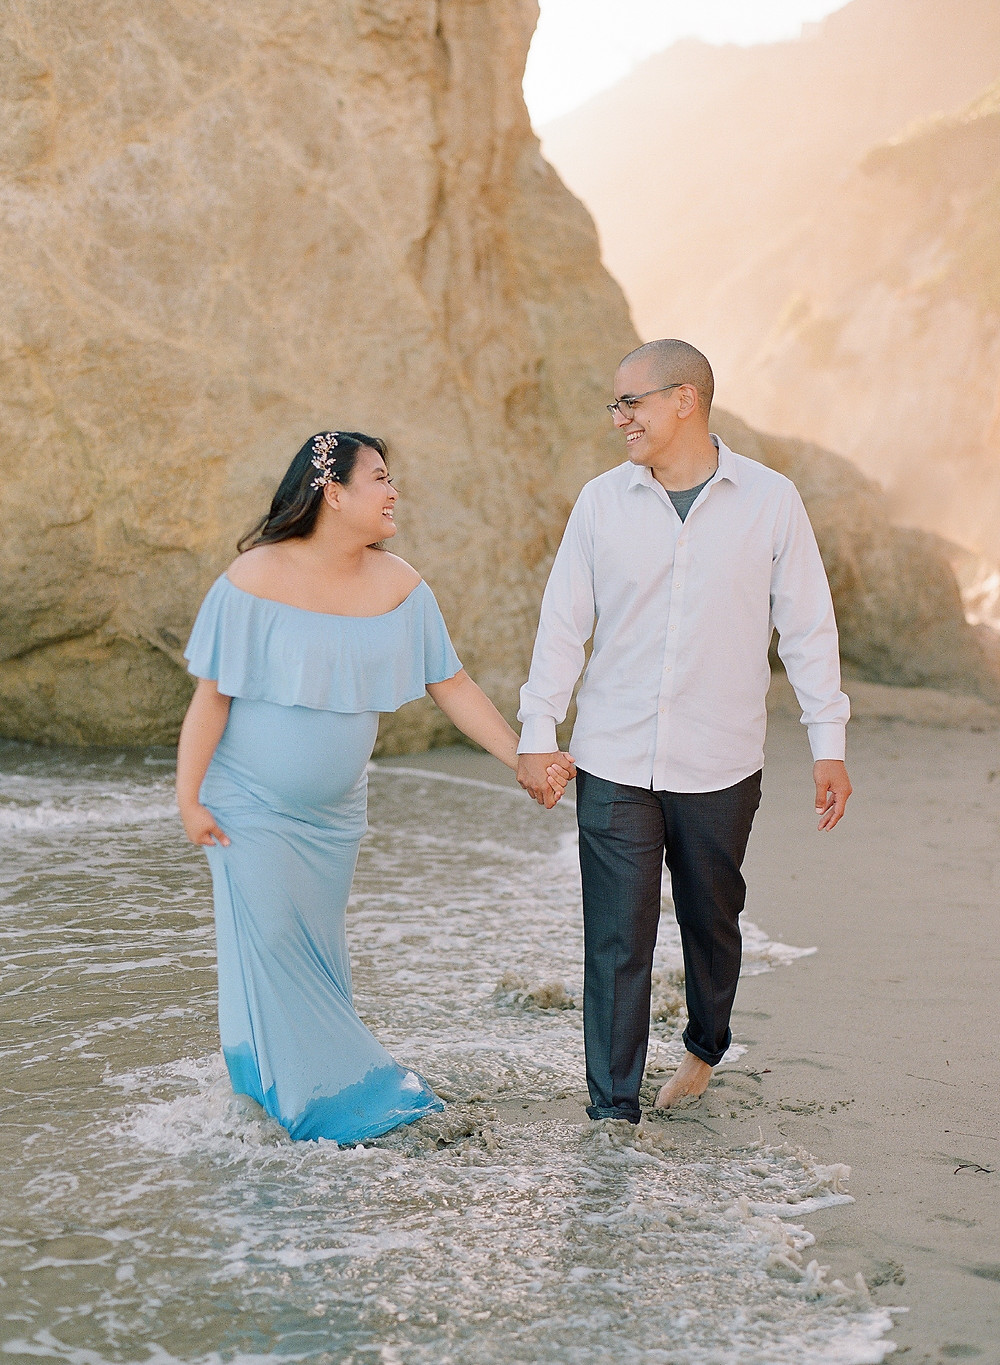 Maternity portraits of mom and dad walking on the beach laughing and looking at each other